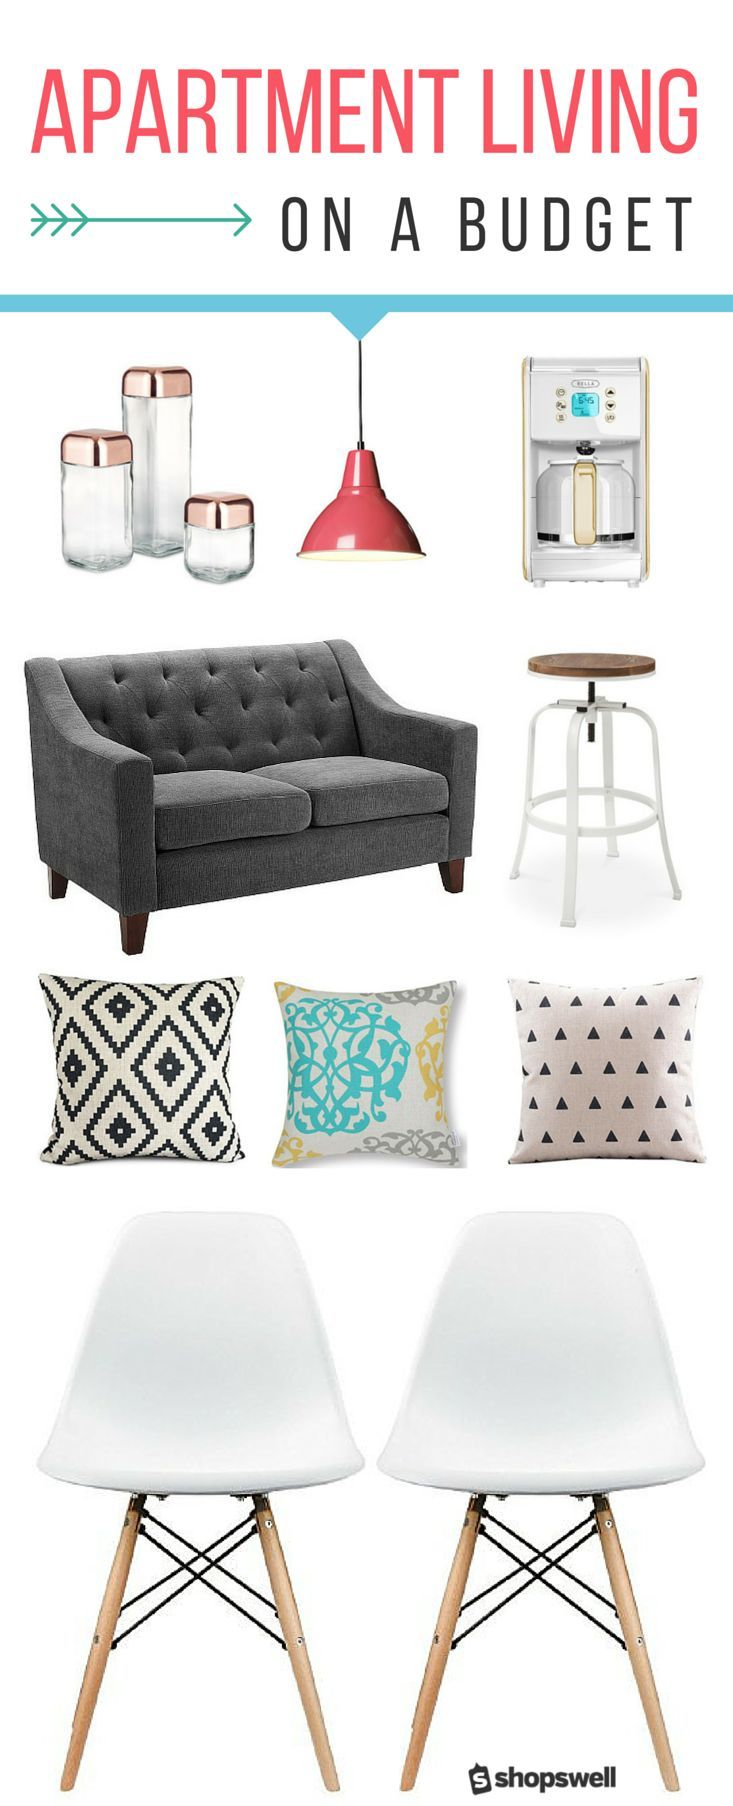 Small space + small budget does not mean settling for boring home decor. Here are our picks for the best furniture and home decor items for apartment living.